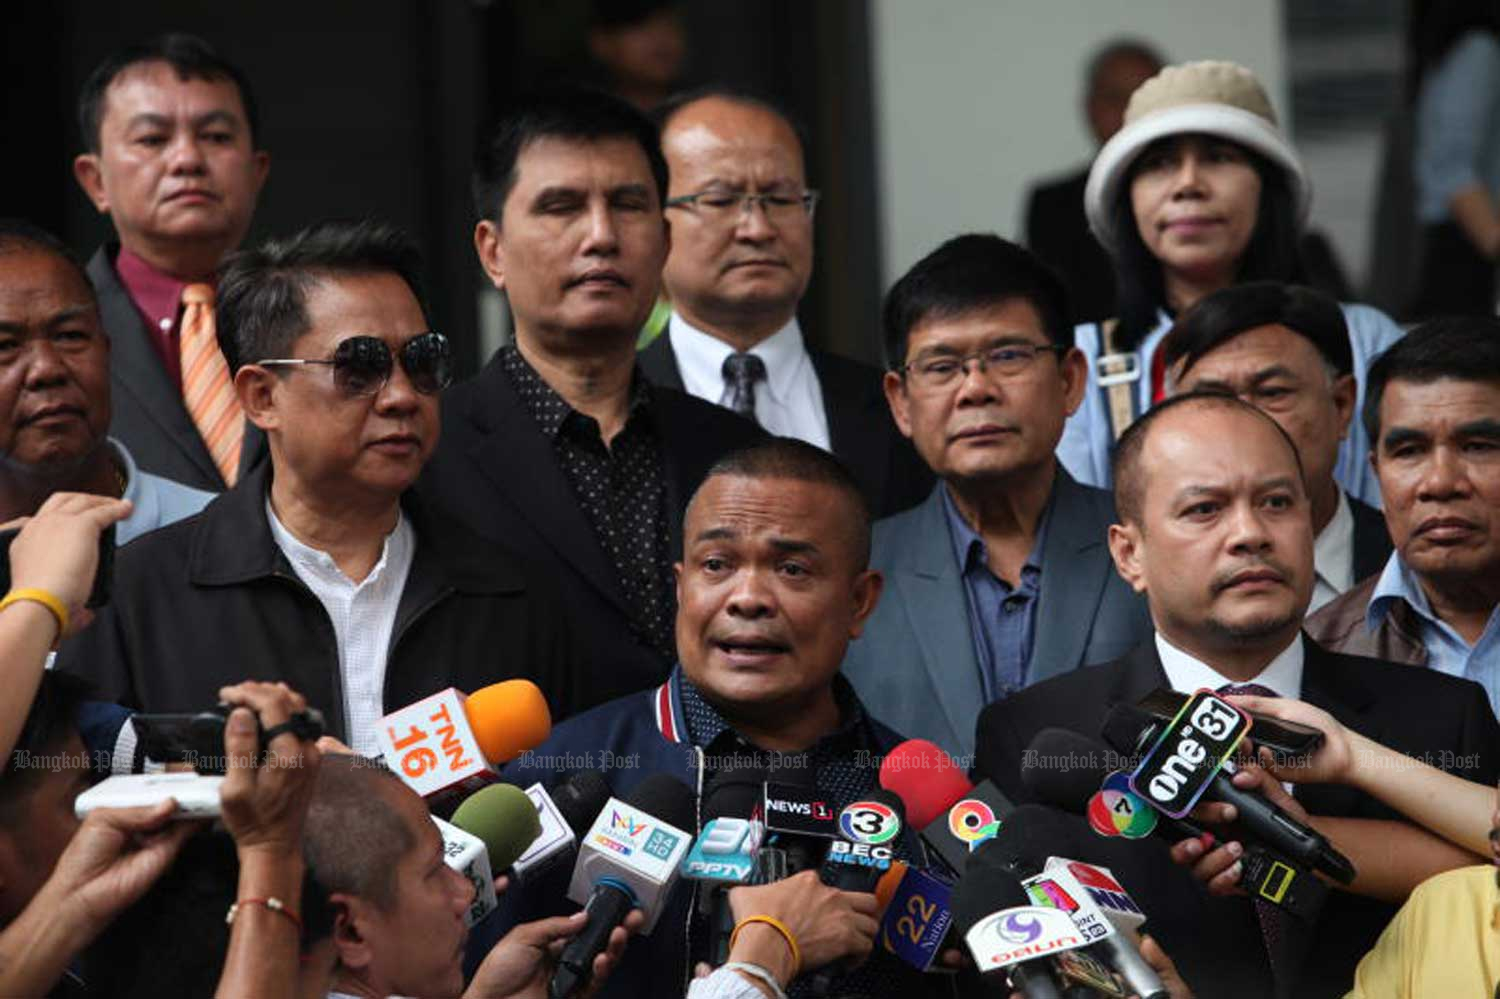 Jatuporn Prompan, chairman of the United Front for Democracy against Dictatorship, speaks to reporters after the Criminal Court's ruling at the Criminal Court in Bangkok on Wednesday. (Photo by Apichart Jinakul)